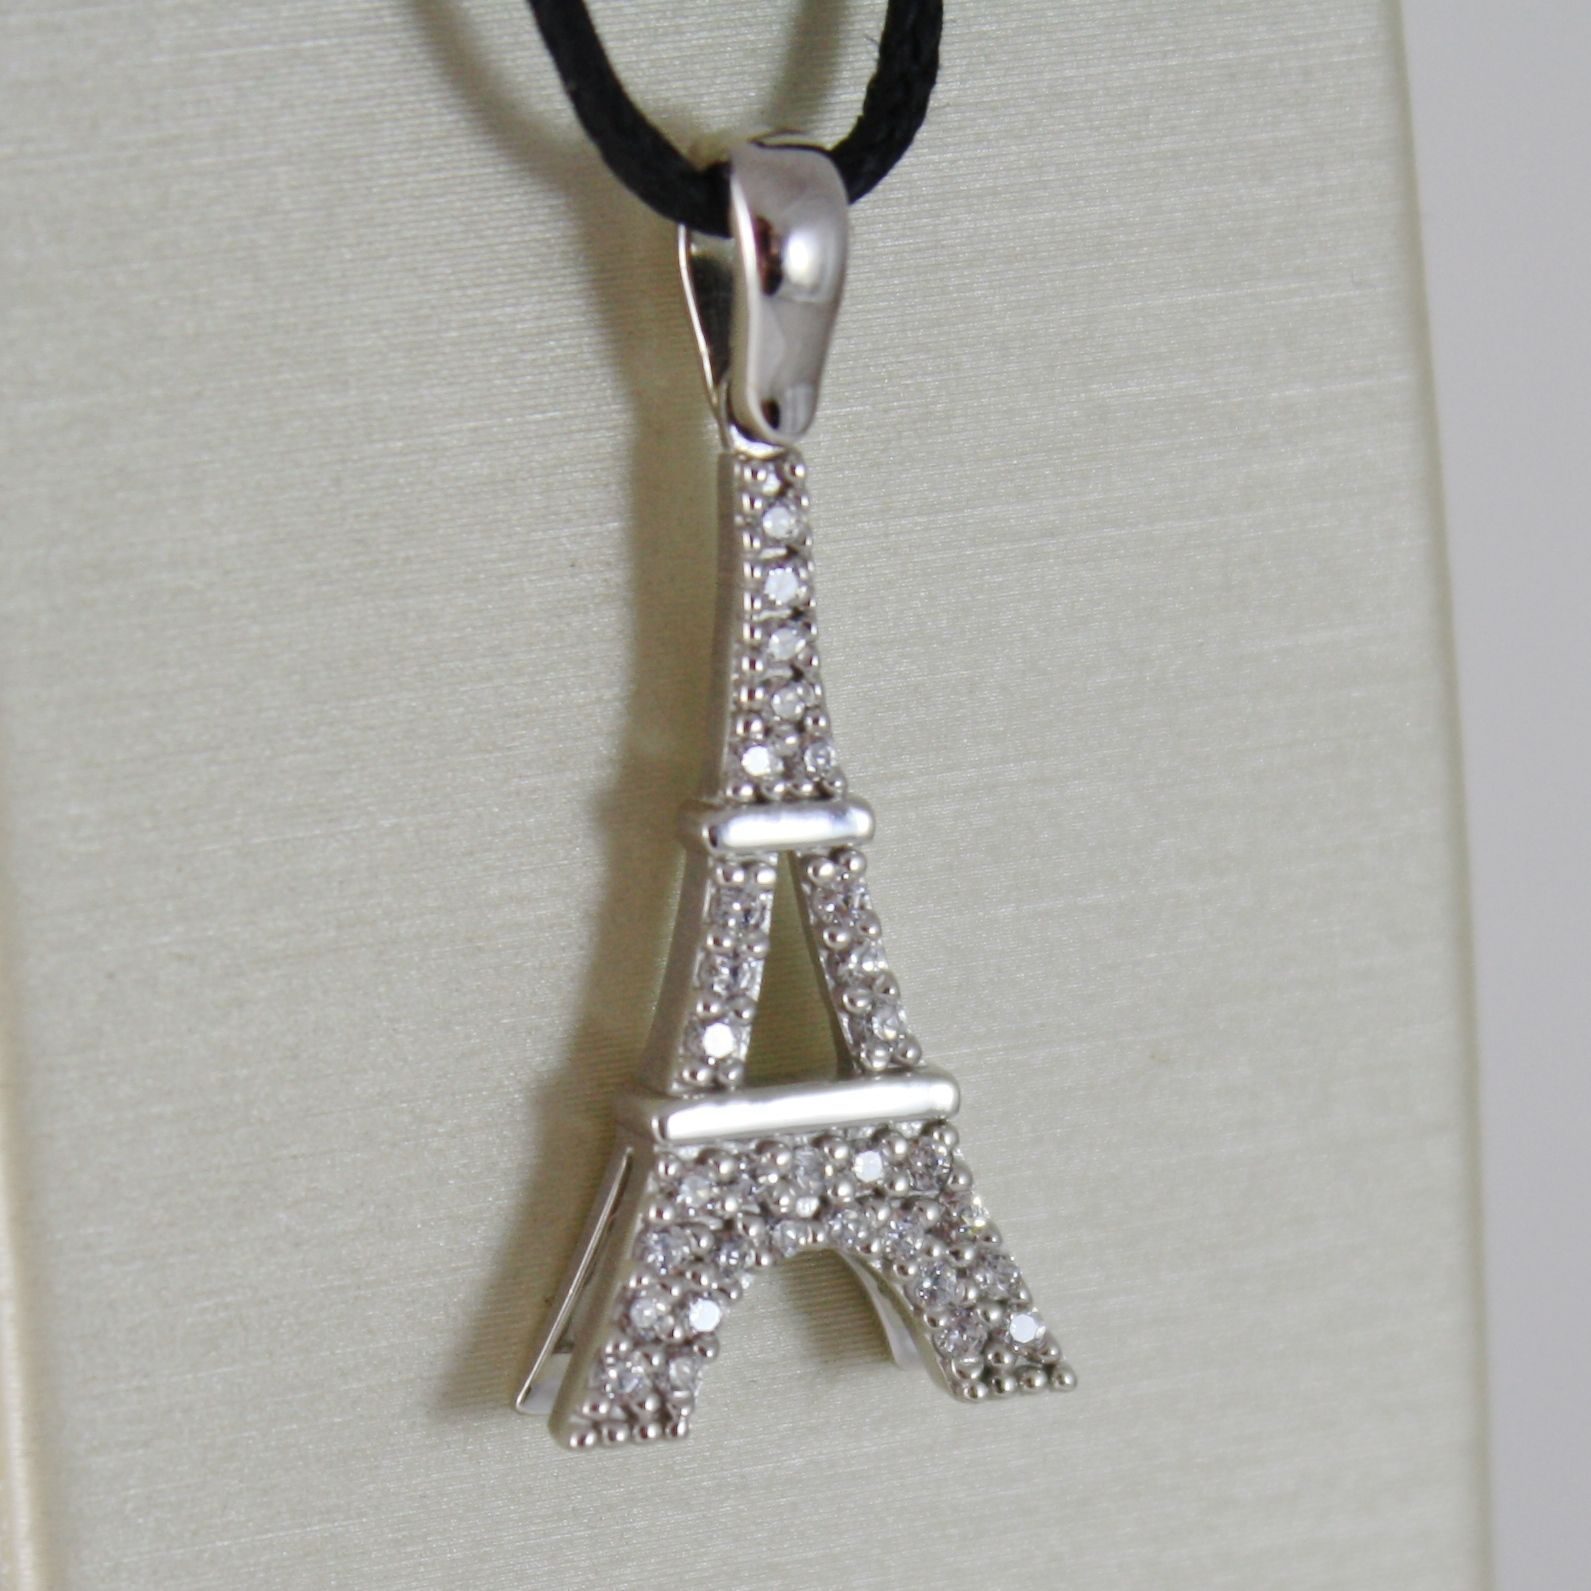 18K WHITE GOLD EIFFEL TOWER PENDANT 27 MM, 1.06 INCHES, ZIRCONIA, MADE IN ITALY